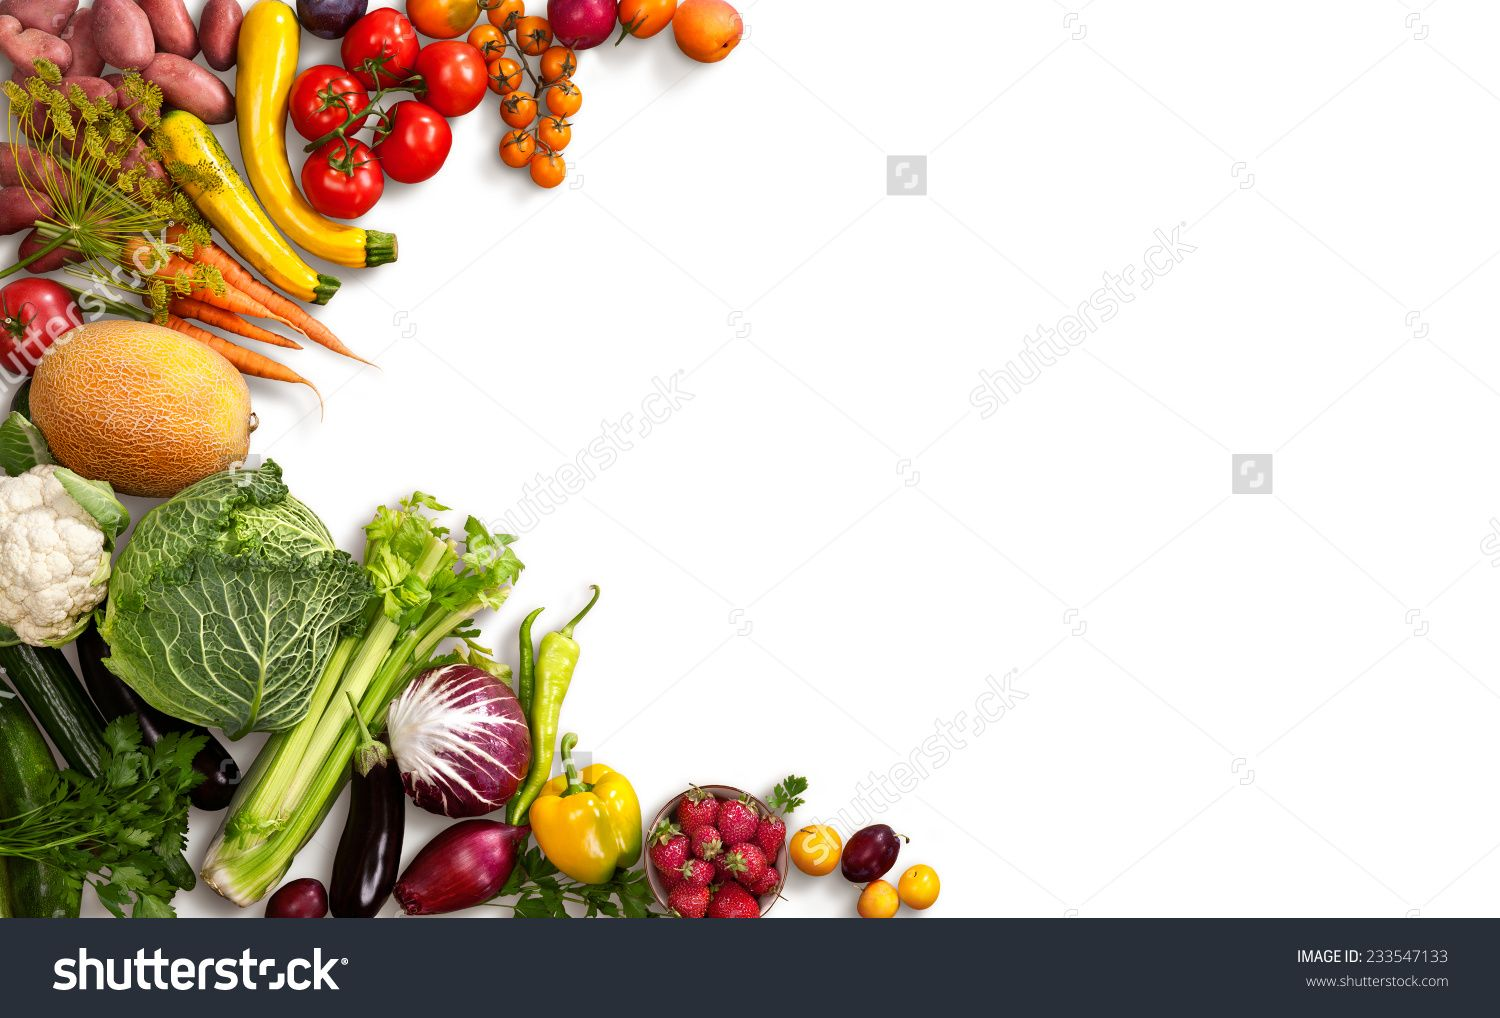 Pictures of Different Healthy Foods   Healthy Food ...